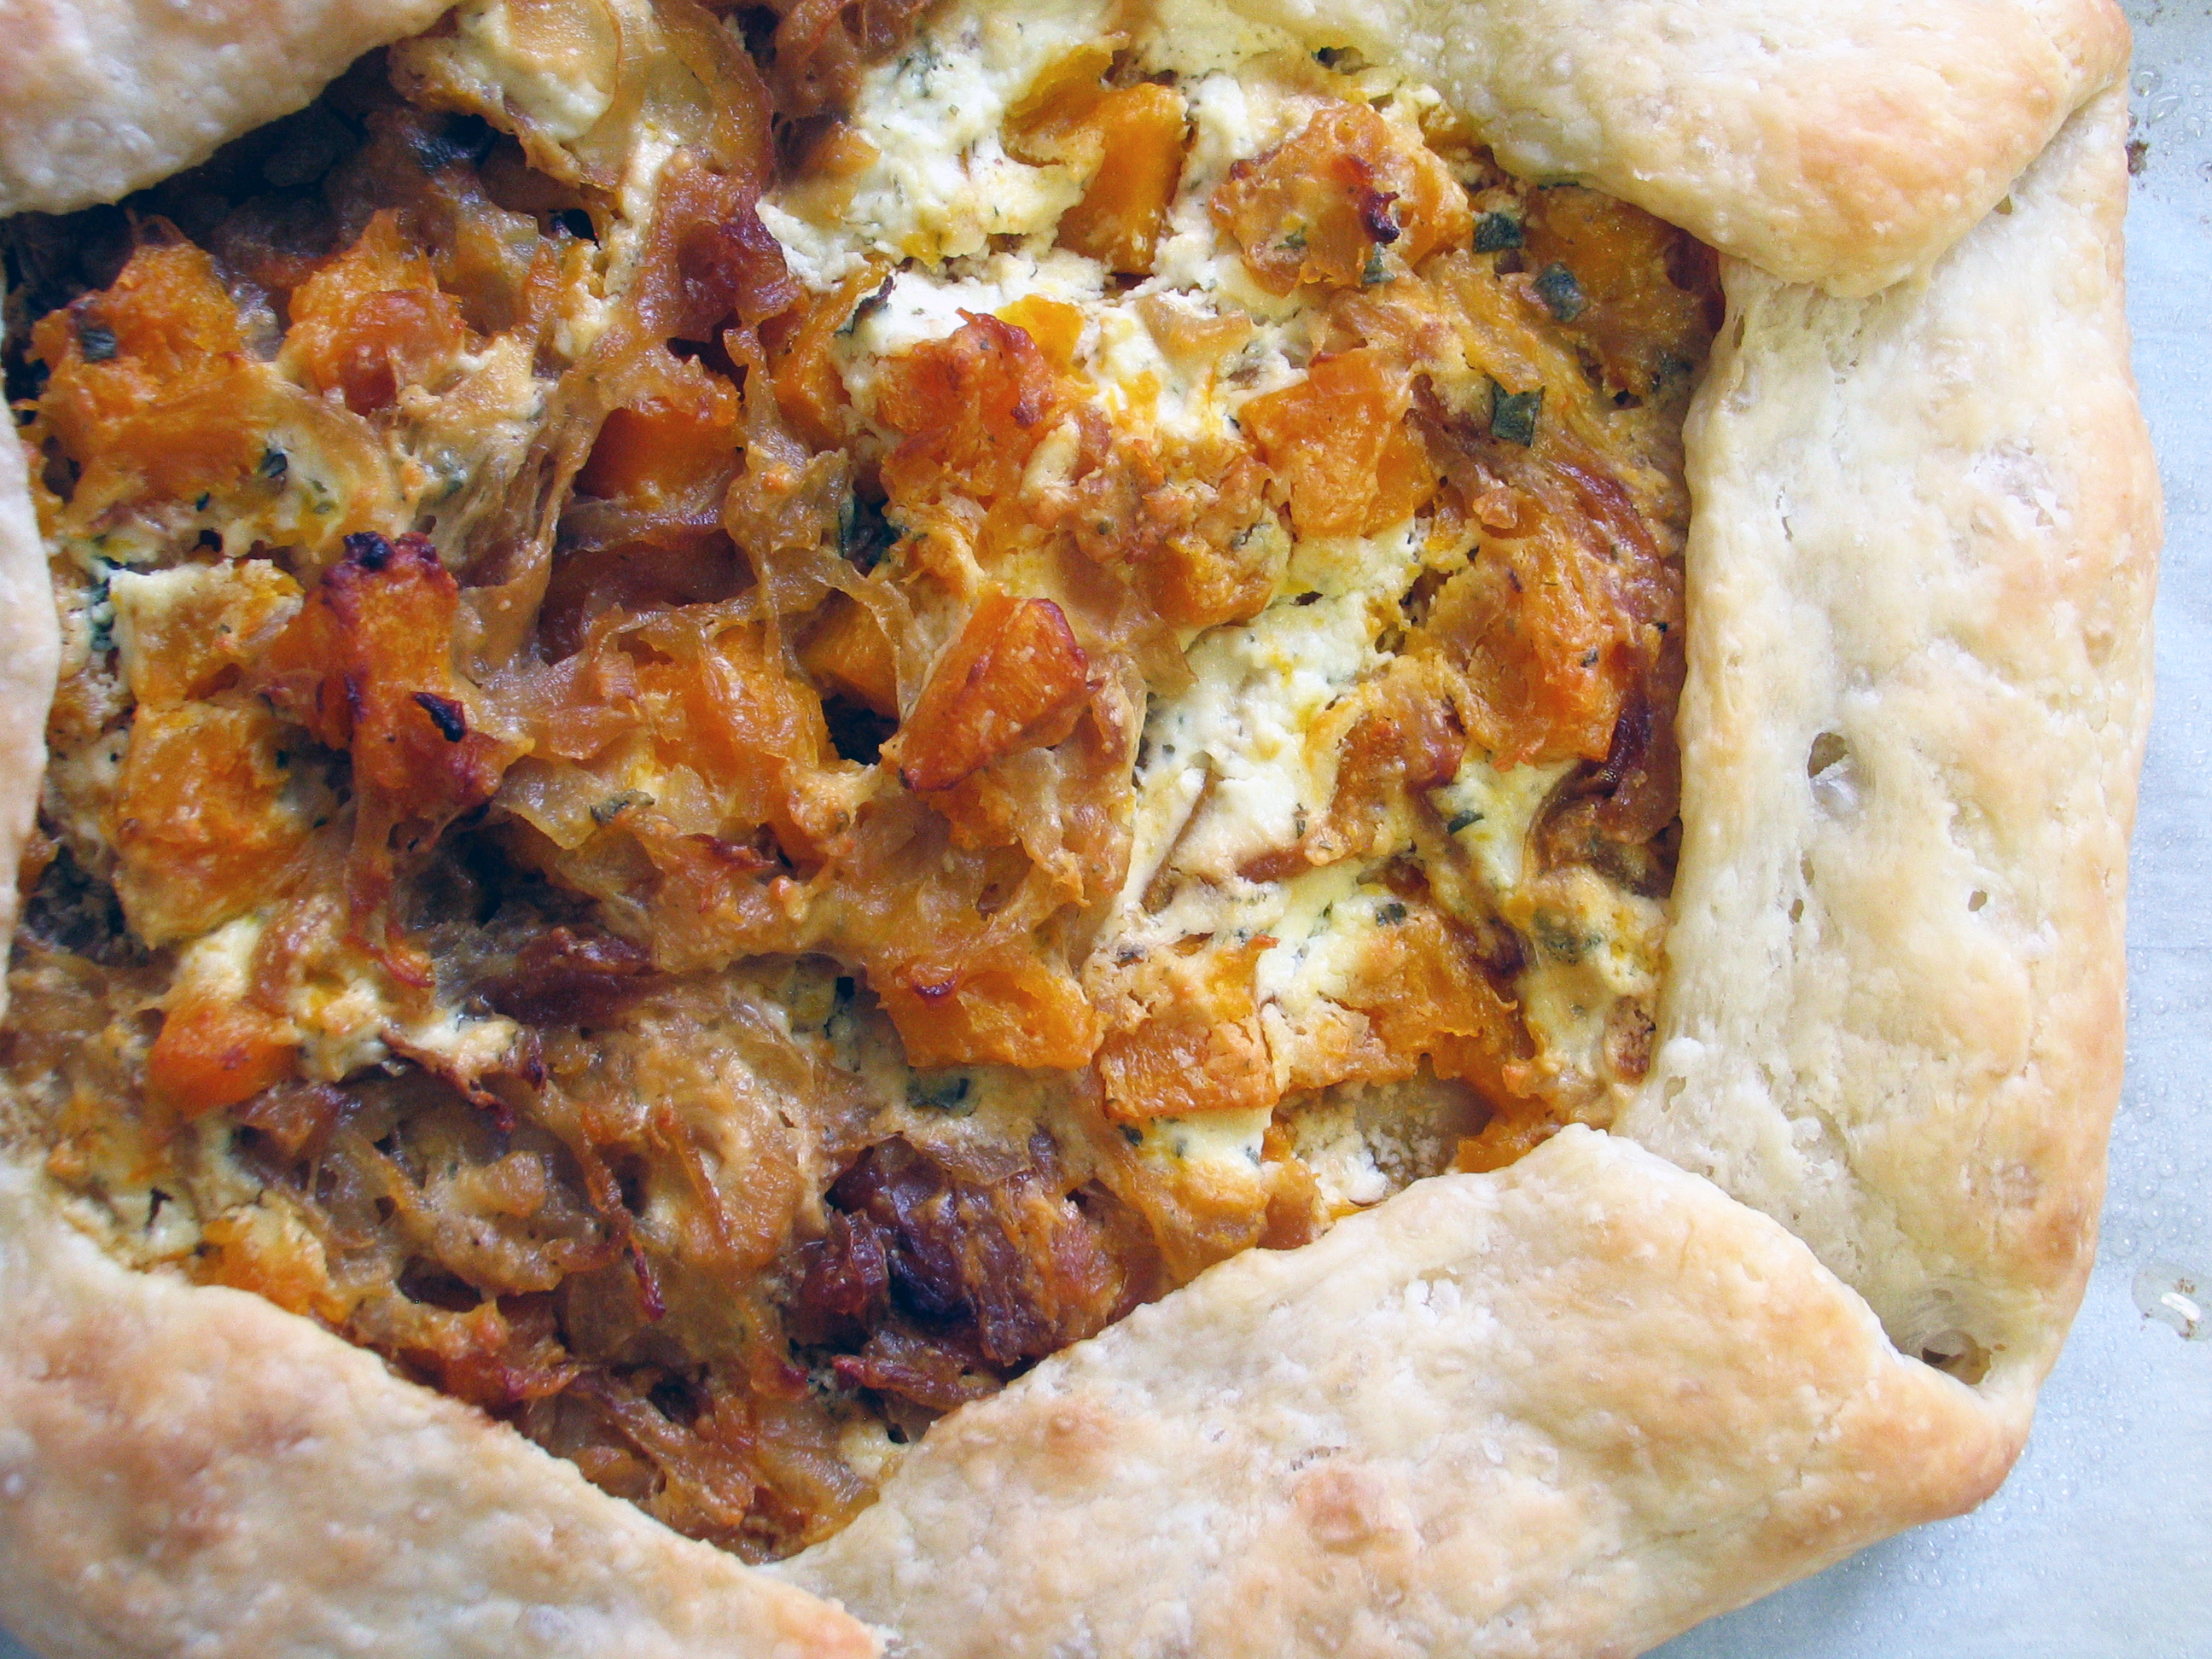 Butternut Squash, Goat Cheese and Caramelized Onion Galette